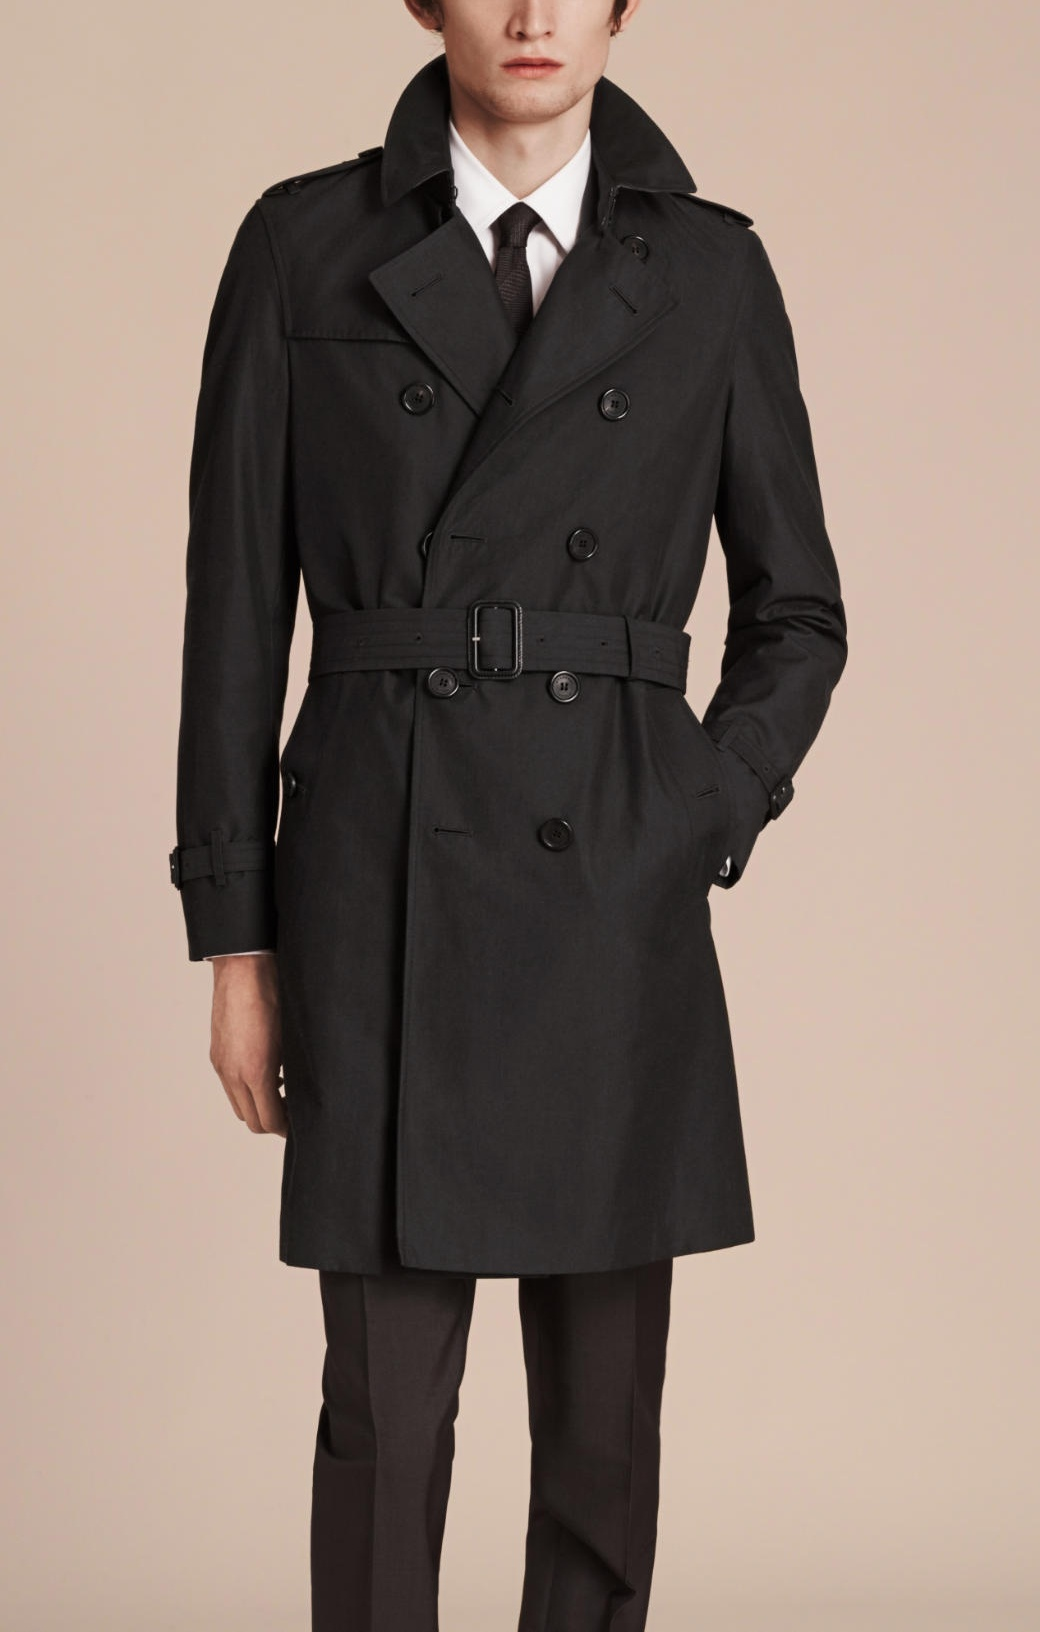 Free Shipping Get Authentic Discount Outlet Store The Chelsea cotton trench coat Burberry Newest Online Limited Edition Cheap Online Top Quality Online o87hNmI374